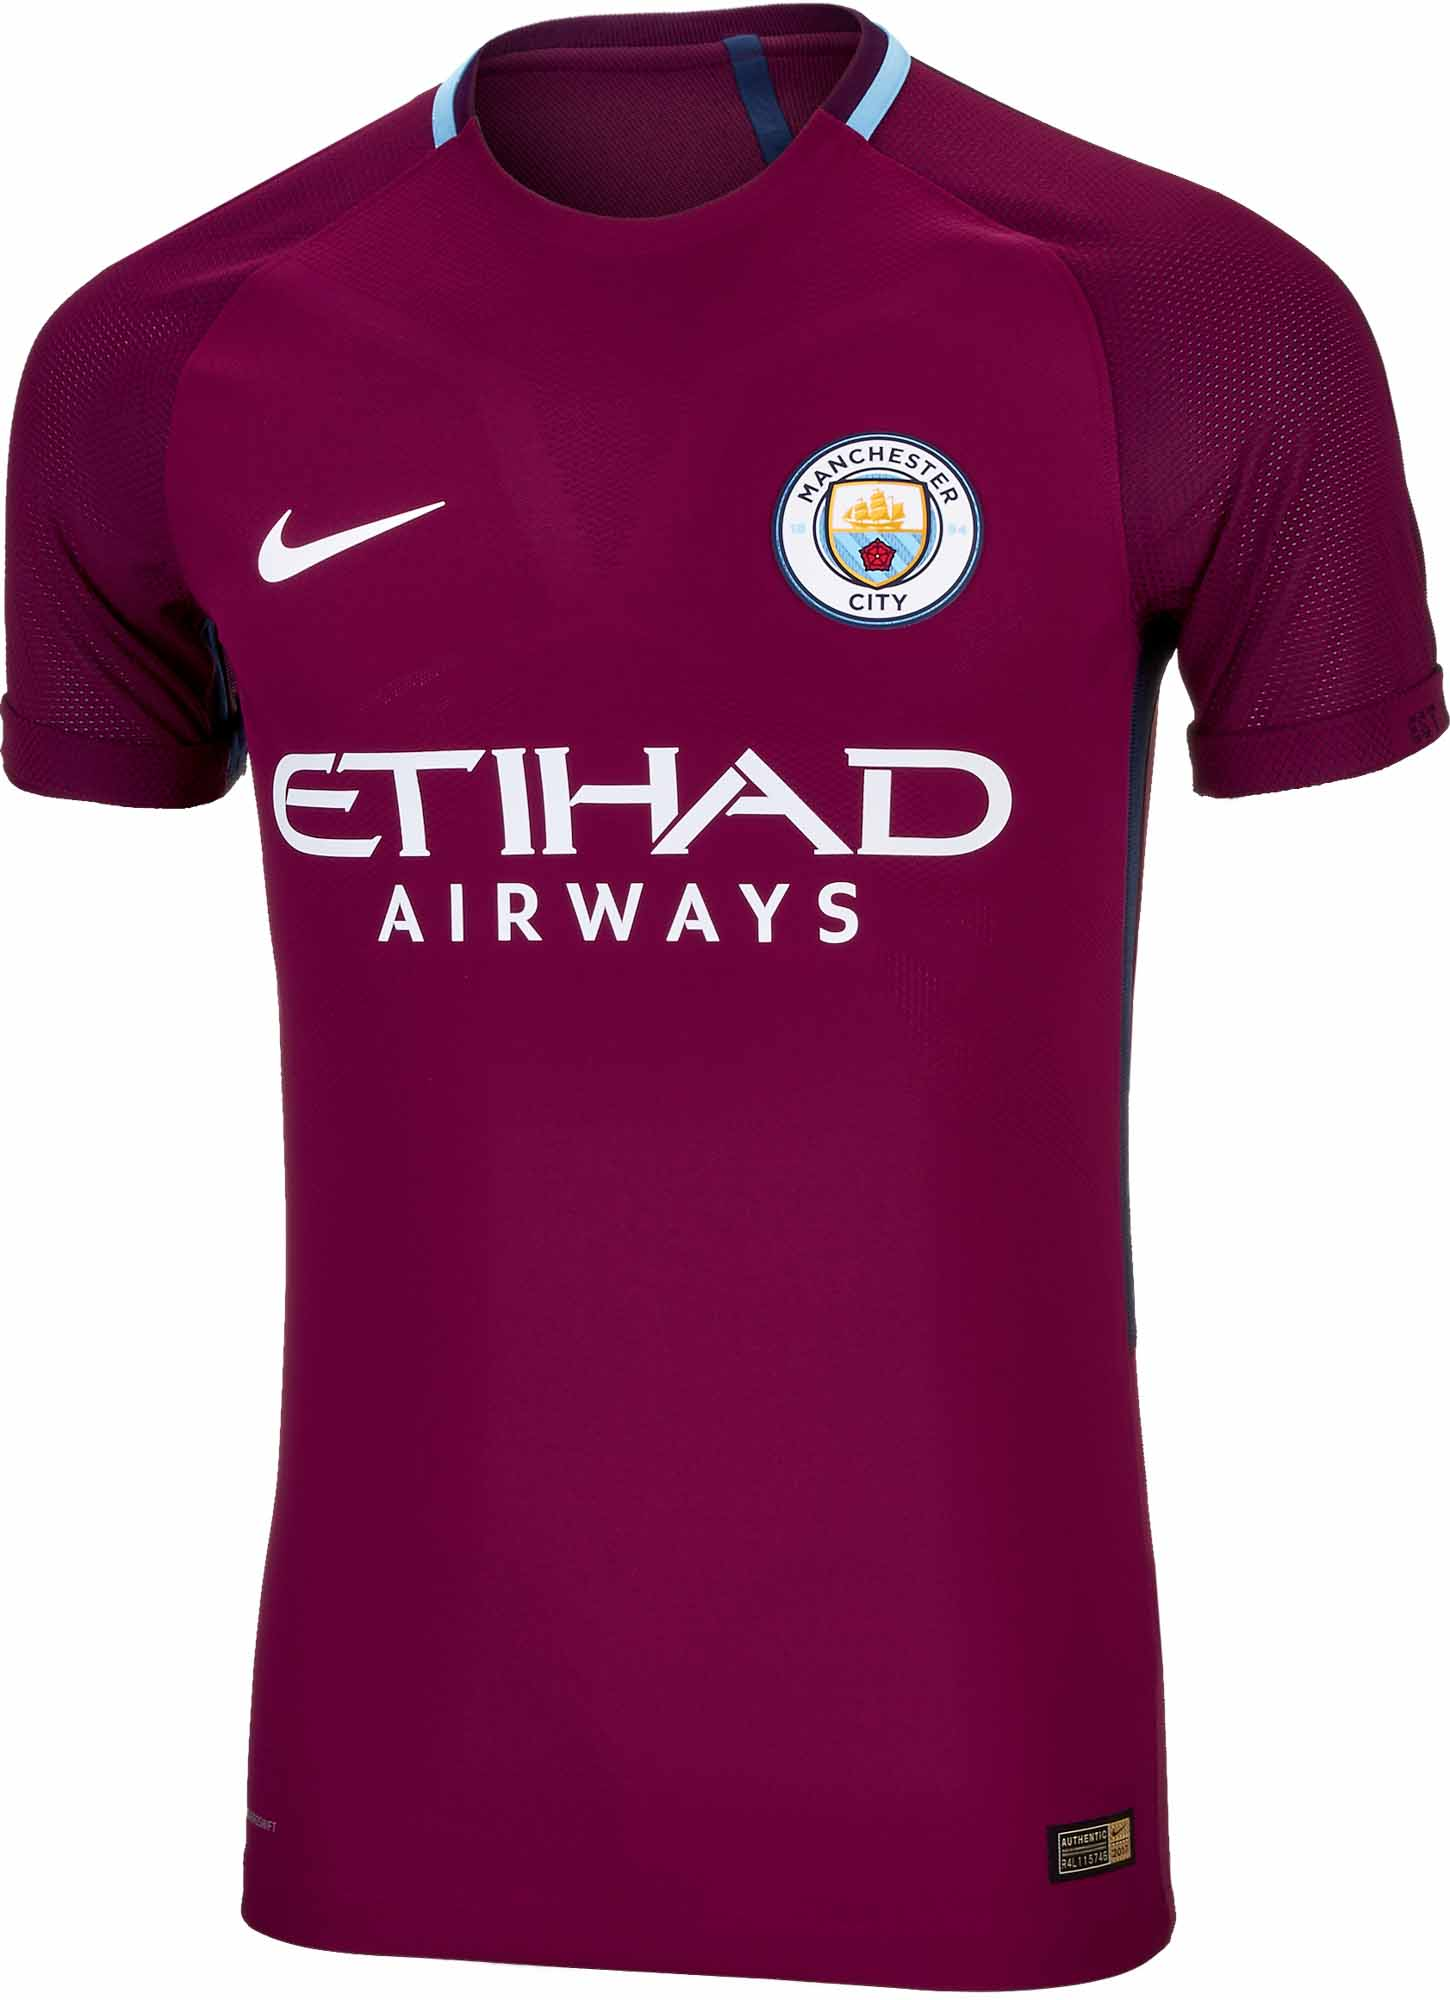 promo code 8cecb eebdc Nike Manchester City Away Match Jersey - 2017/18